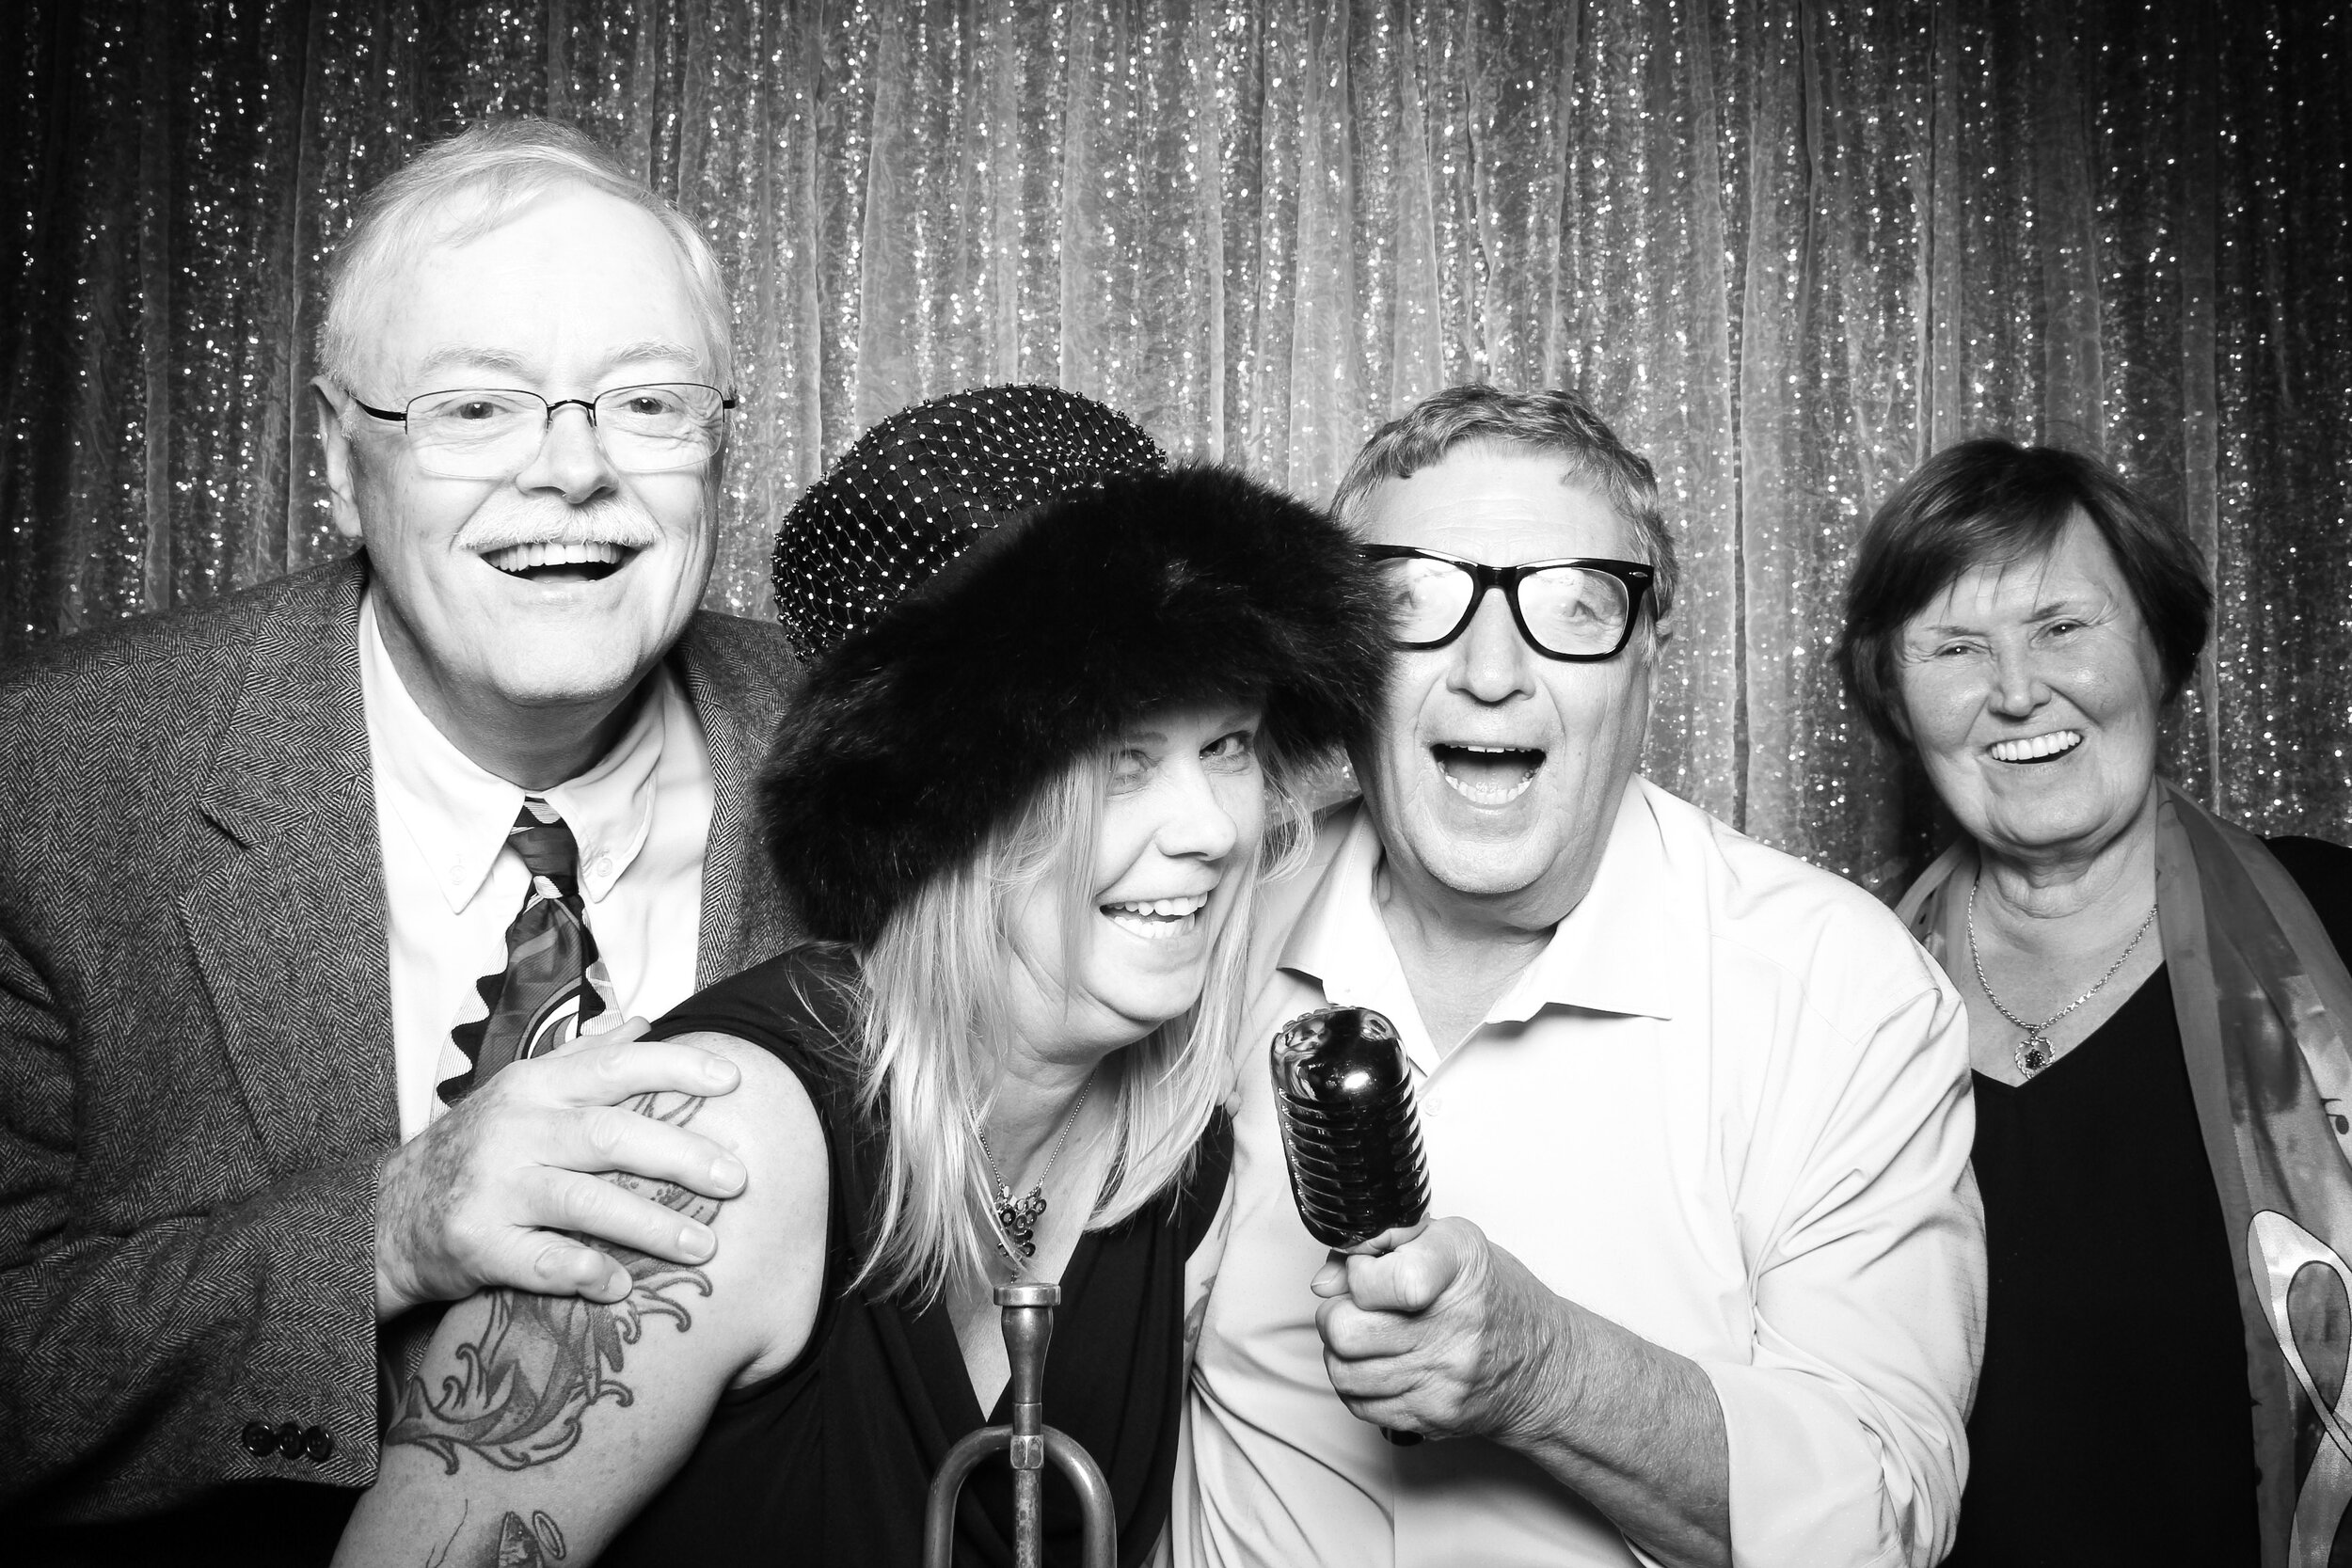 Chicago_Vintage_Wedding_Photobooth_House_of_Blues_21.jpg